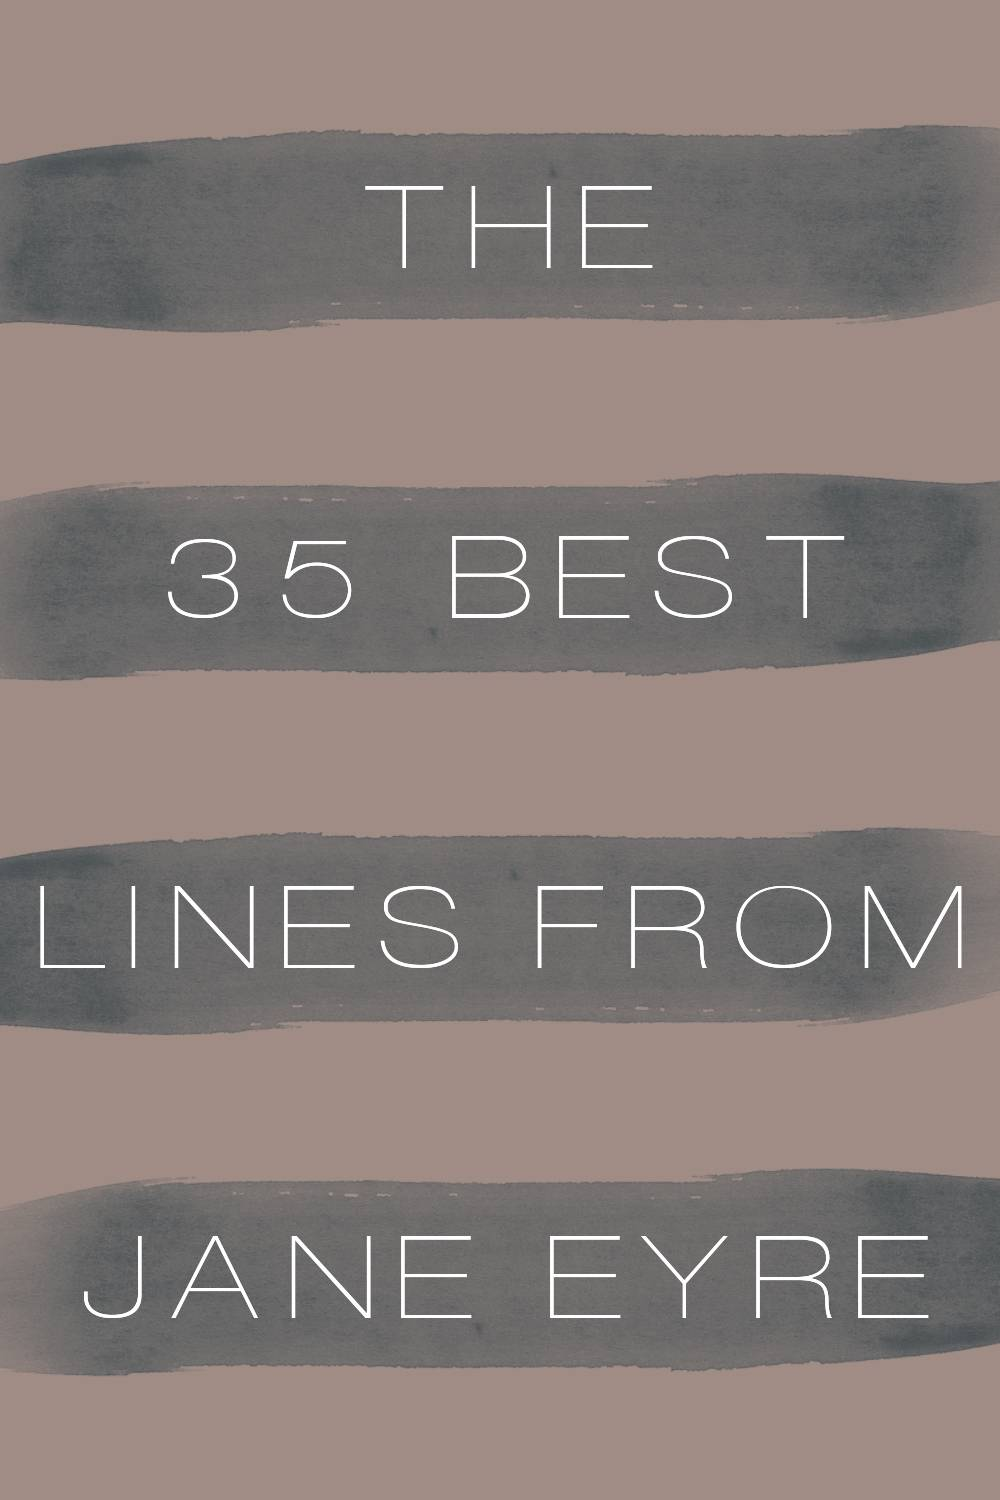 The 35 Best Jane Eyre Quotes And Lines From Charlotte Brontës Novel